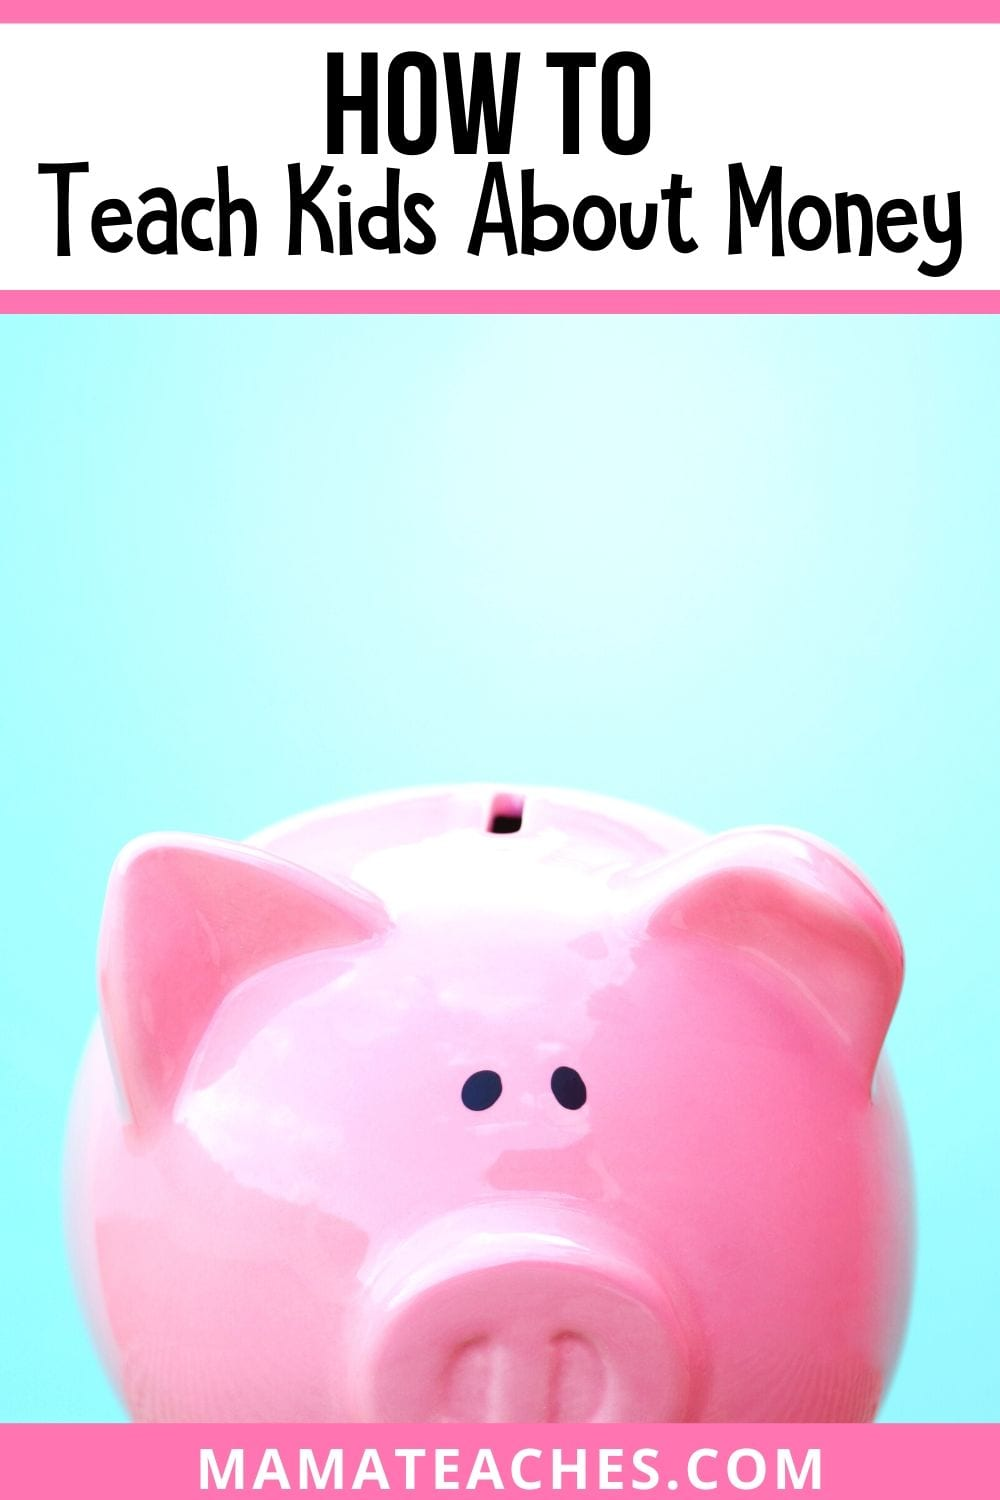 How to Teach Kids About Money - MamaTeaches.com